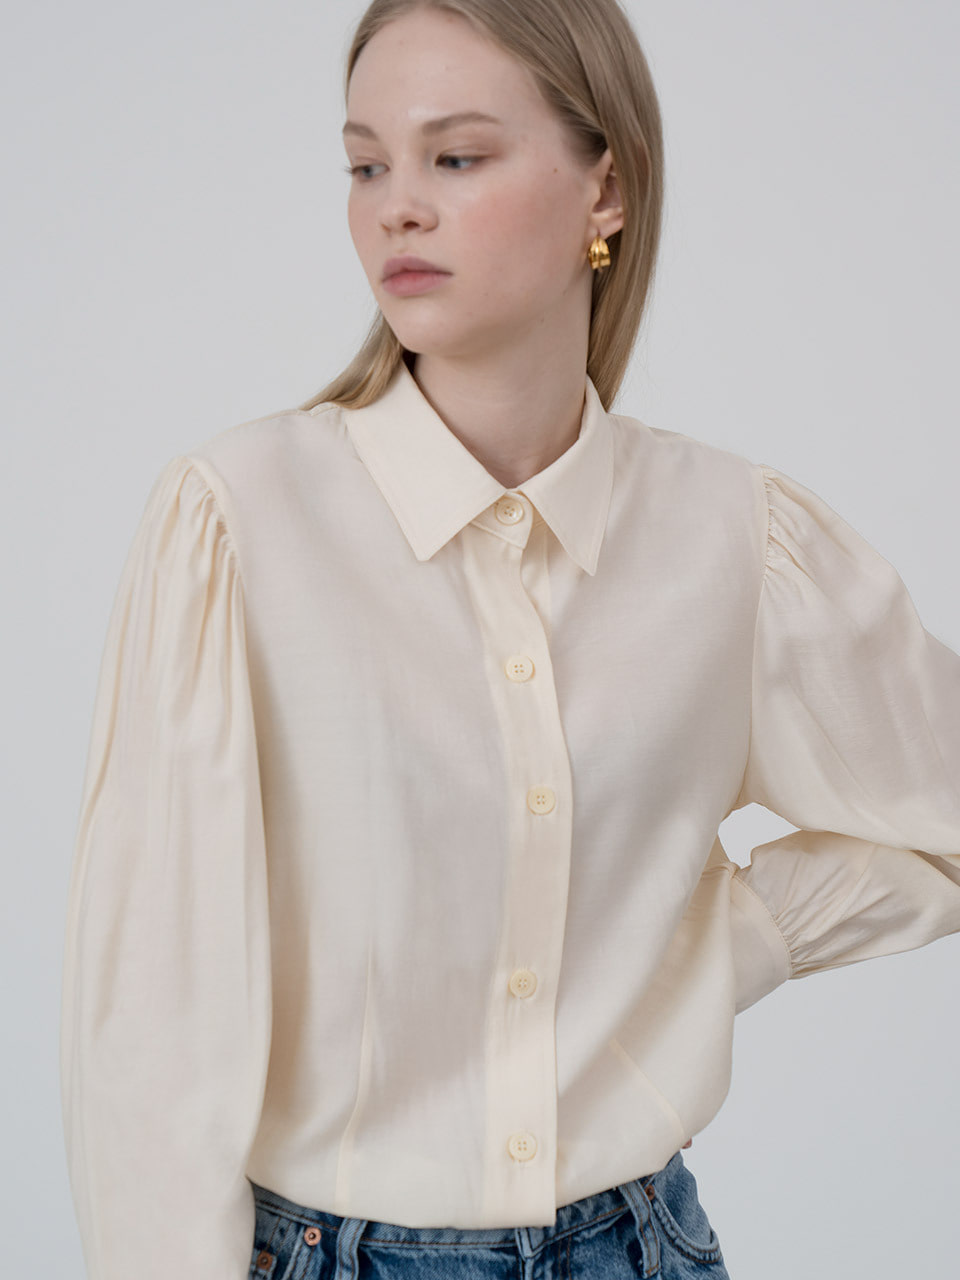 Puff sleeve blouse in butter